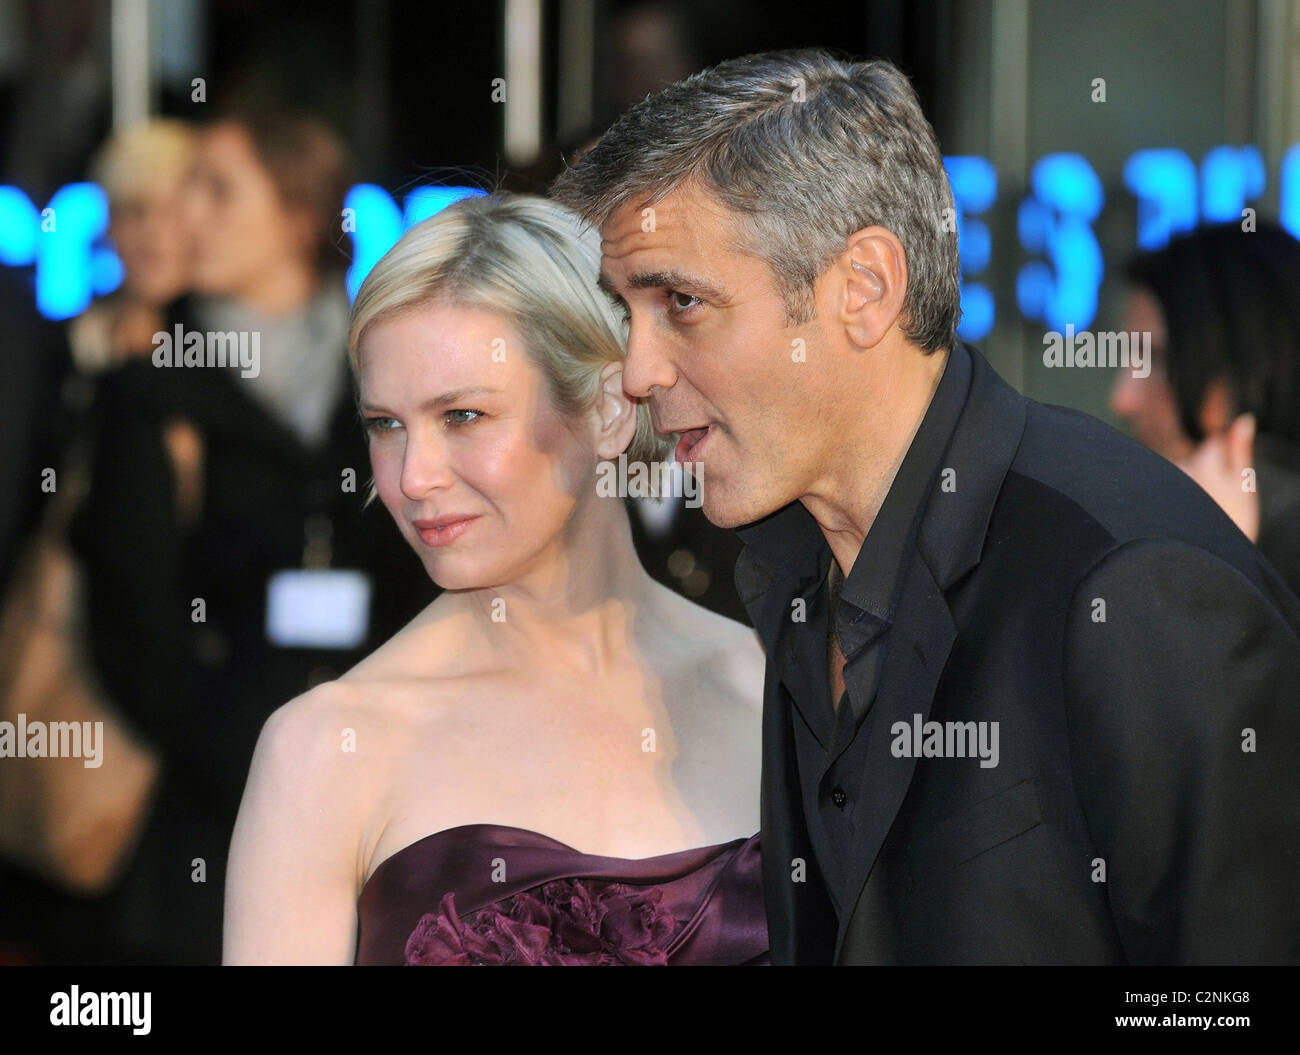 George Clooney and Renee Zellweger at The London Premiere of Leatherheads